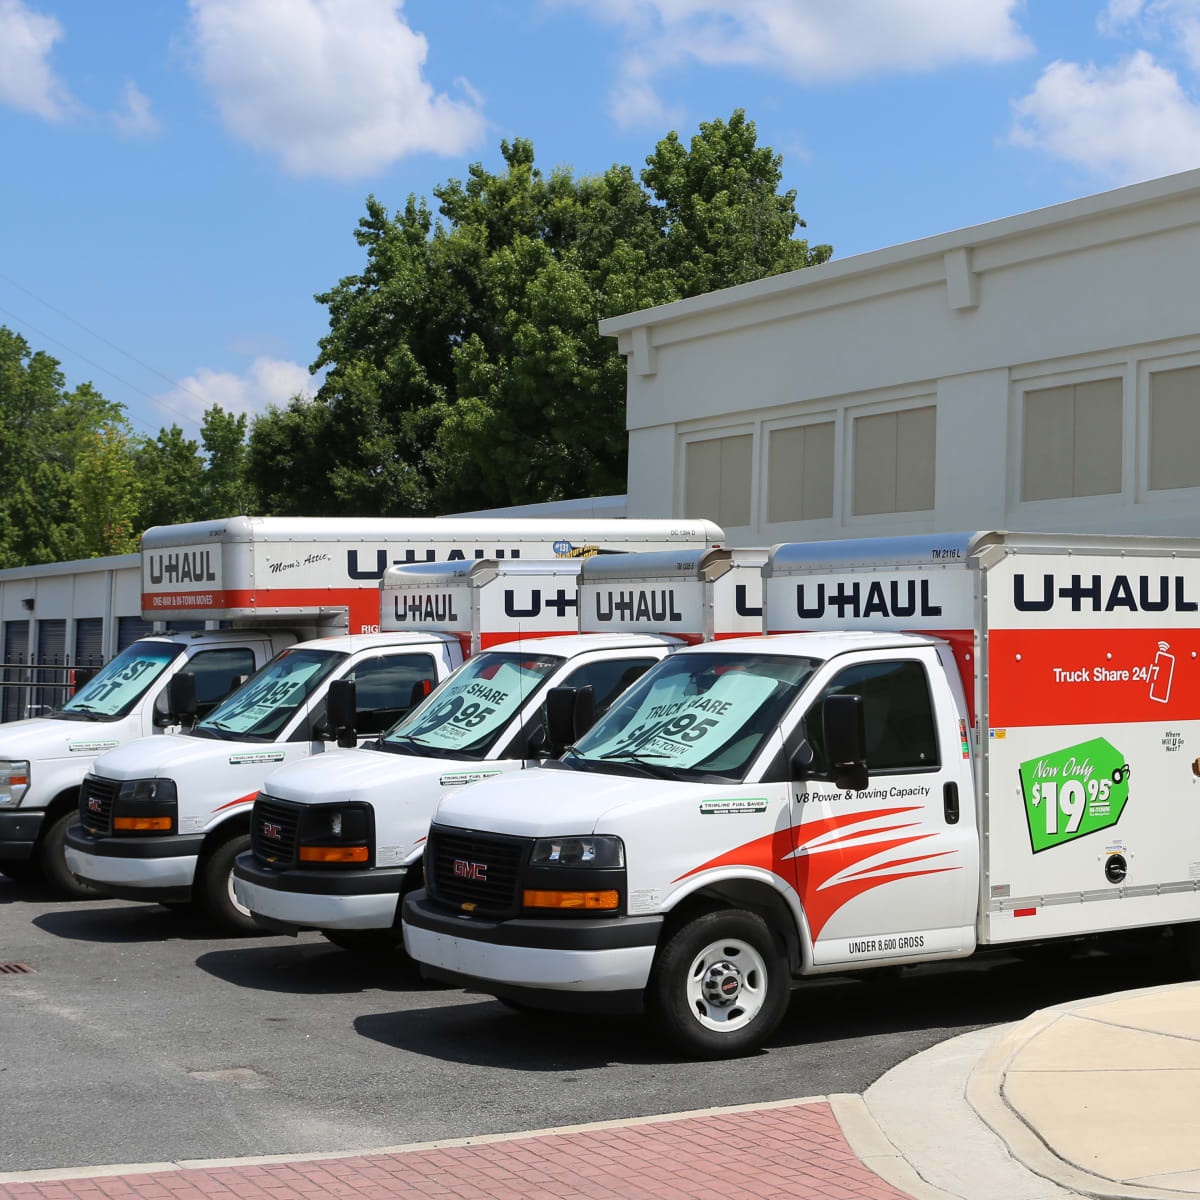 Midgard Self Storage in Greenville, South Carolina, has moving trucks for rent